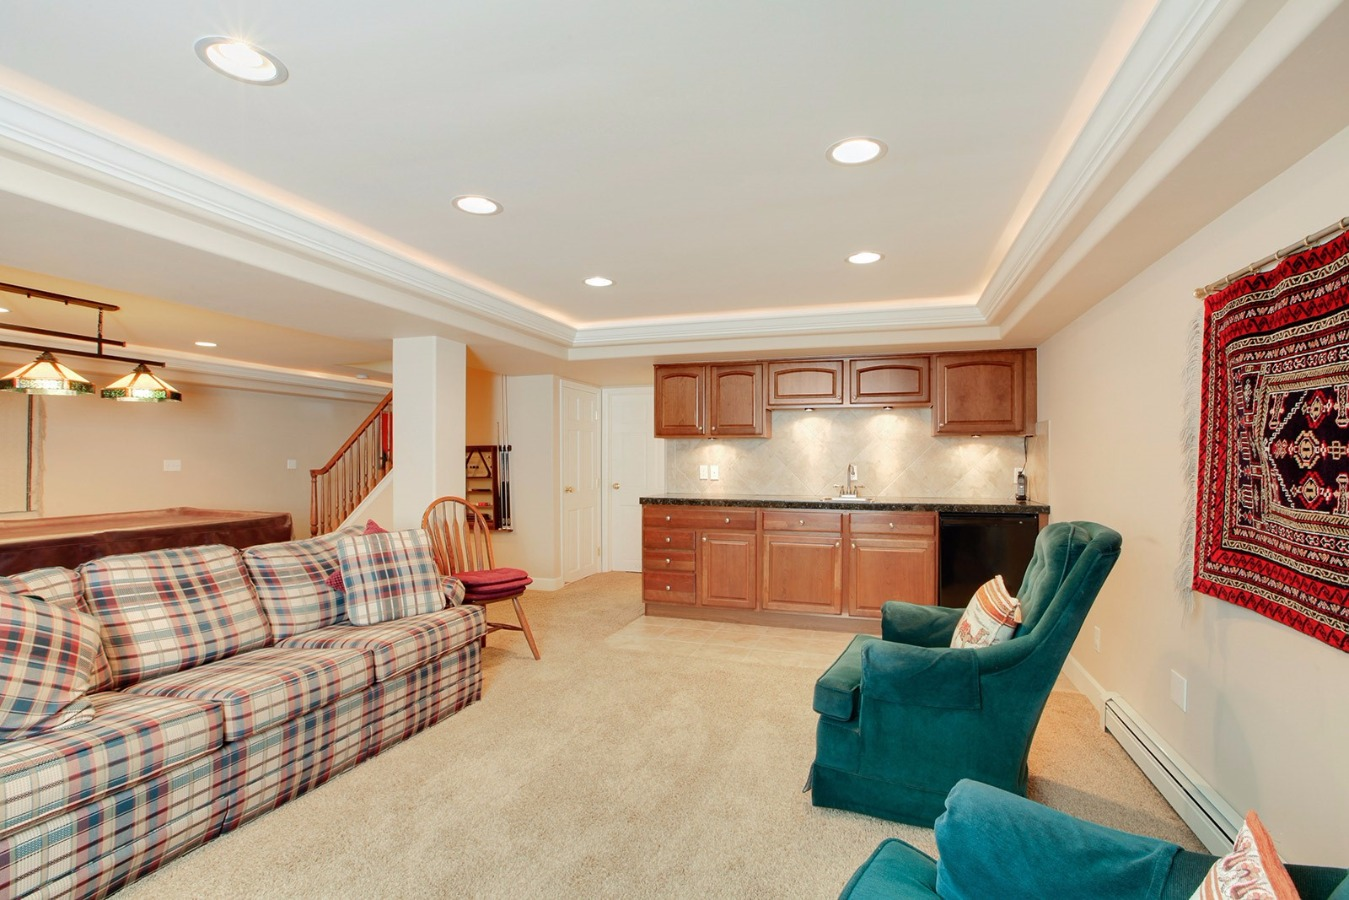 Large wet bar, cabinets, open seating areas